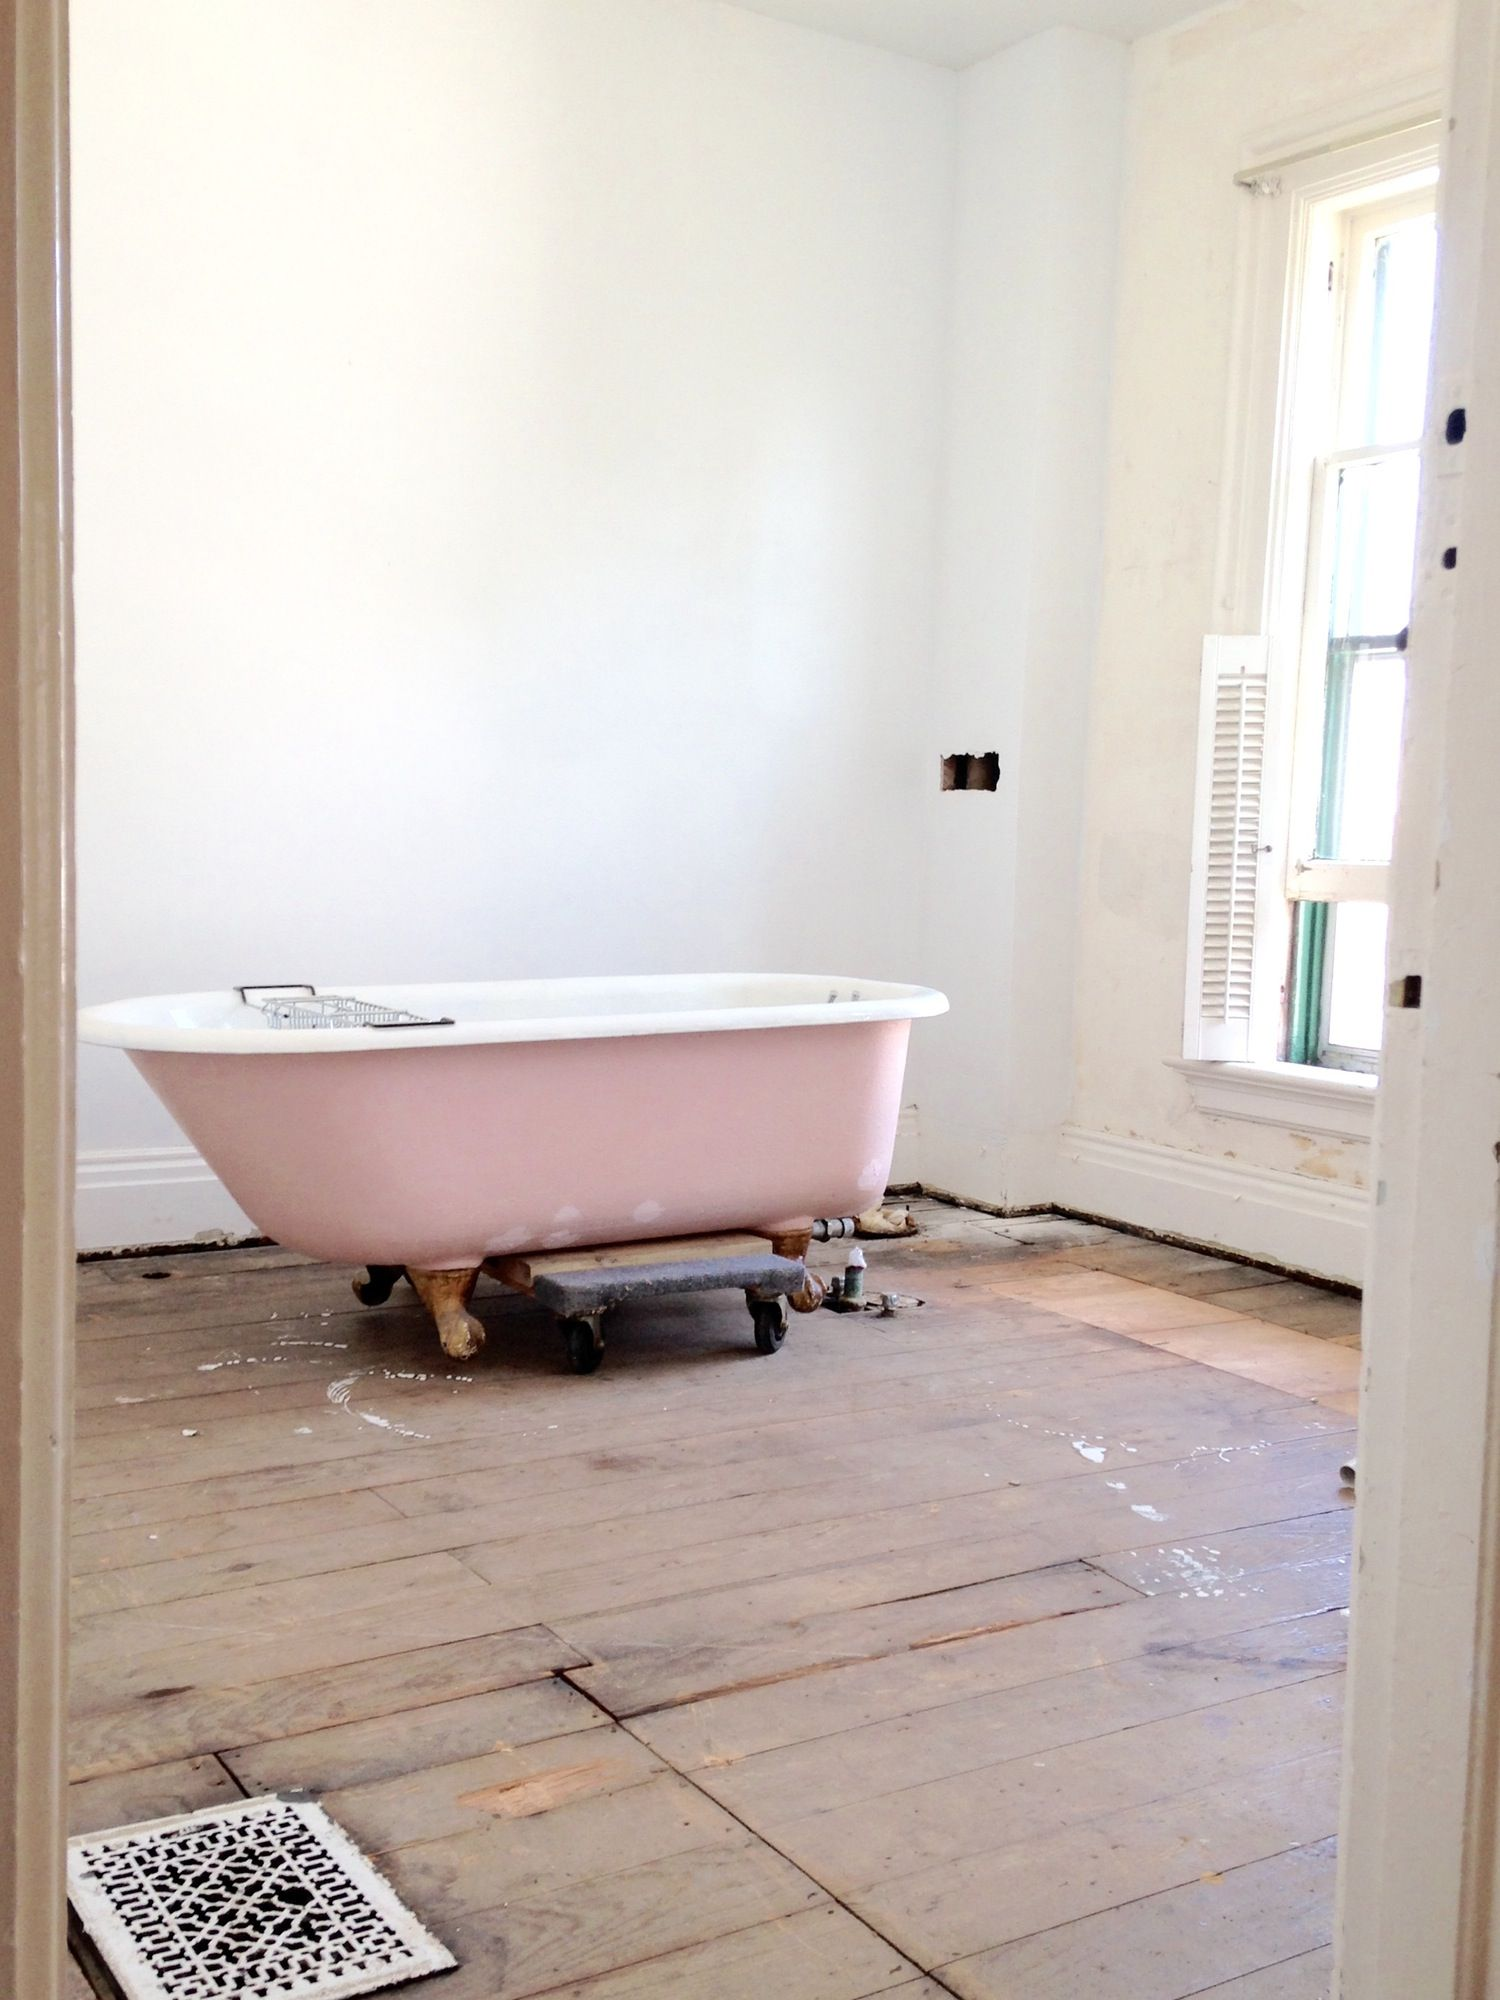 How I Moved Refinished This Clawfoot Tub And Lived To Tell The